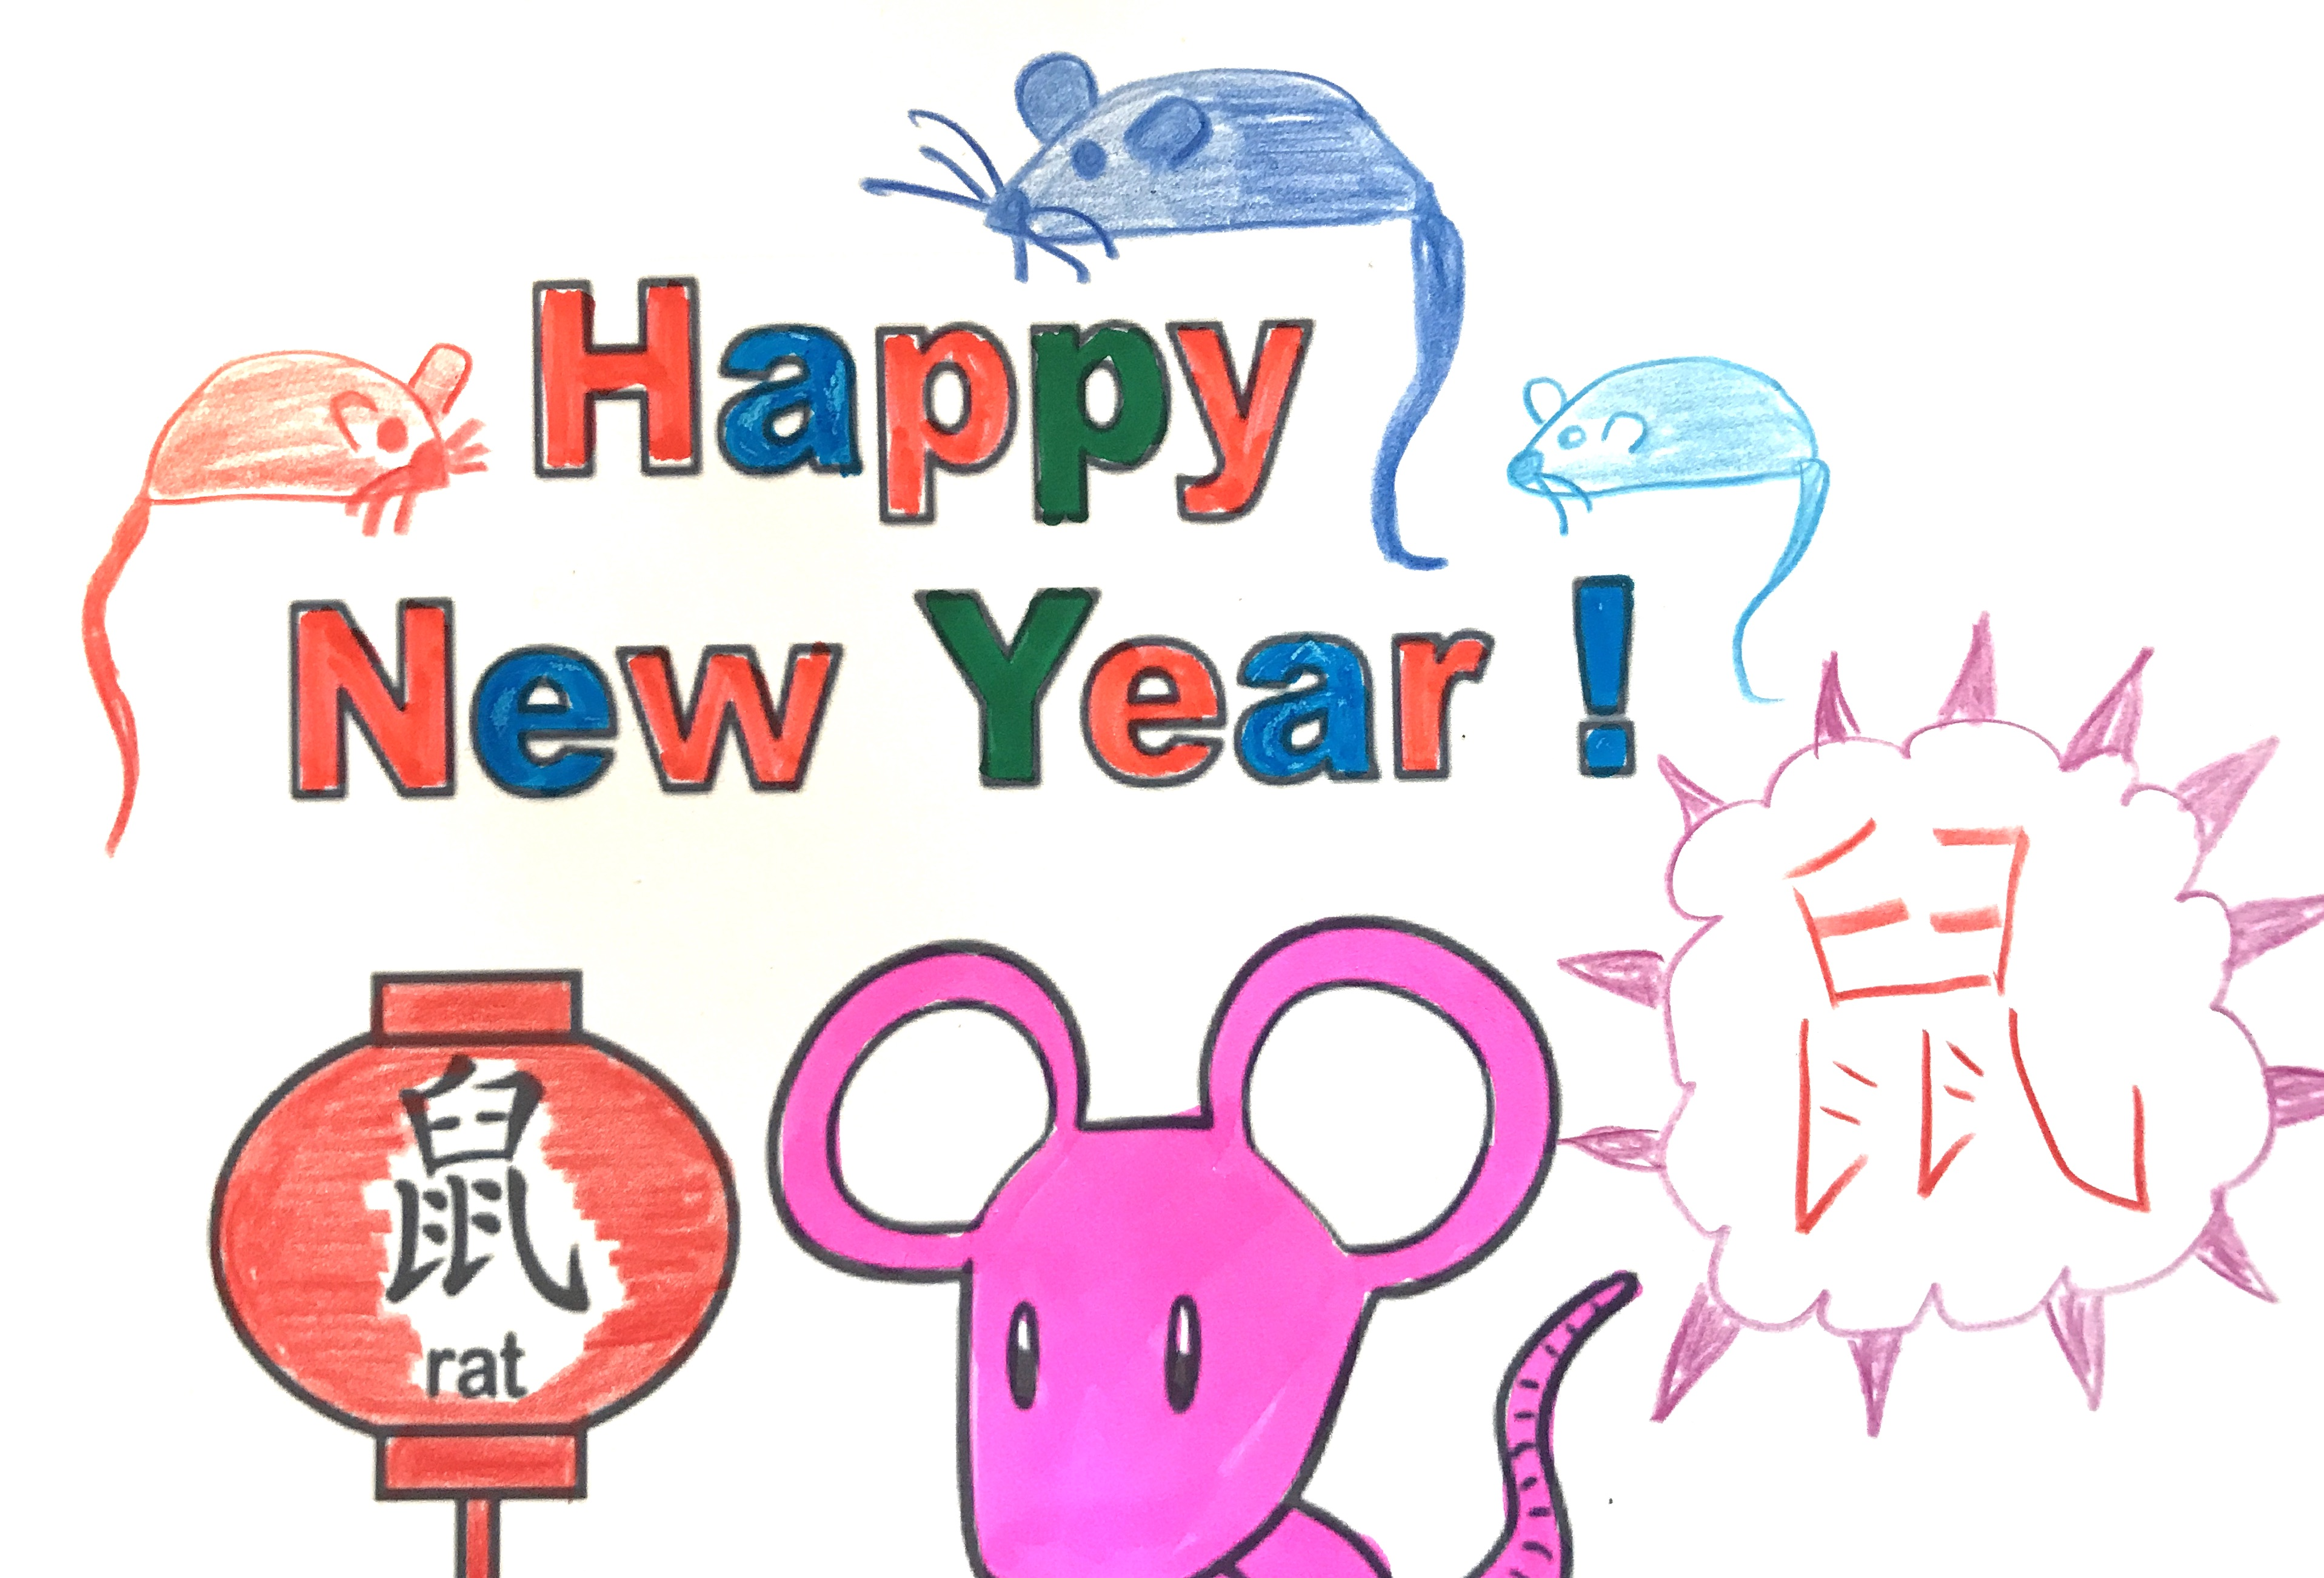 Happy New Year Card Year Of The Rat Creative Chinese